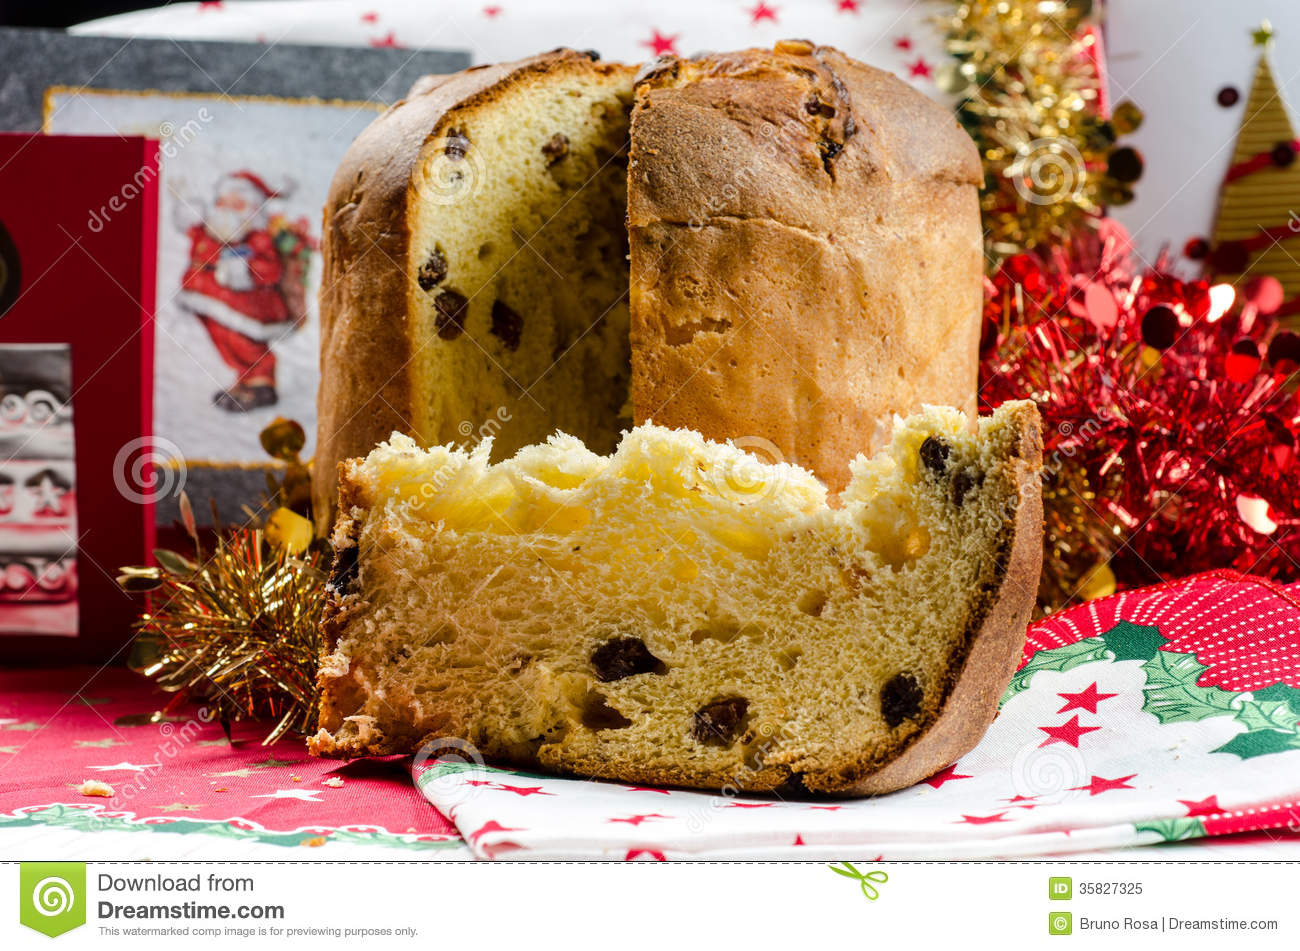 christmas italian cake called panettone on traditional dinner table with decorations - Italian Christmas Table Decorations